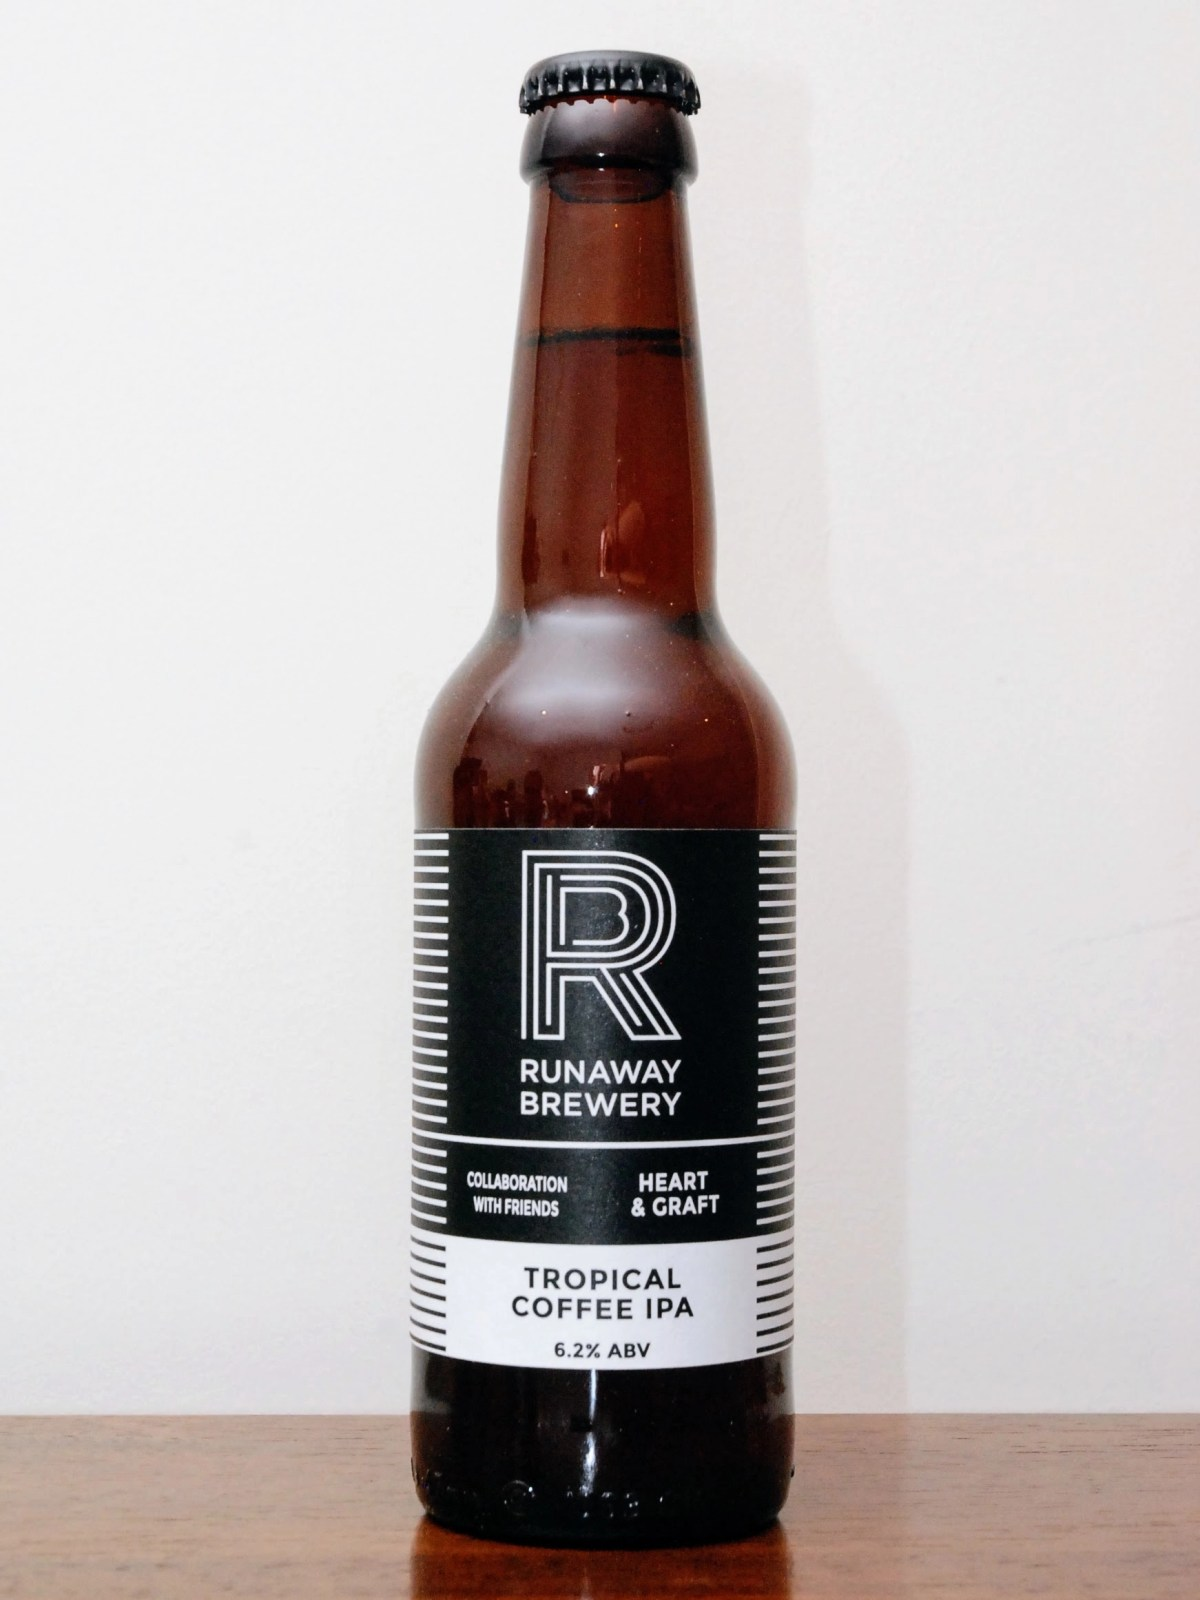 Runaway Brewery, Tropical Coffee IPA